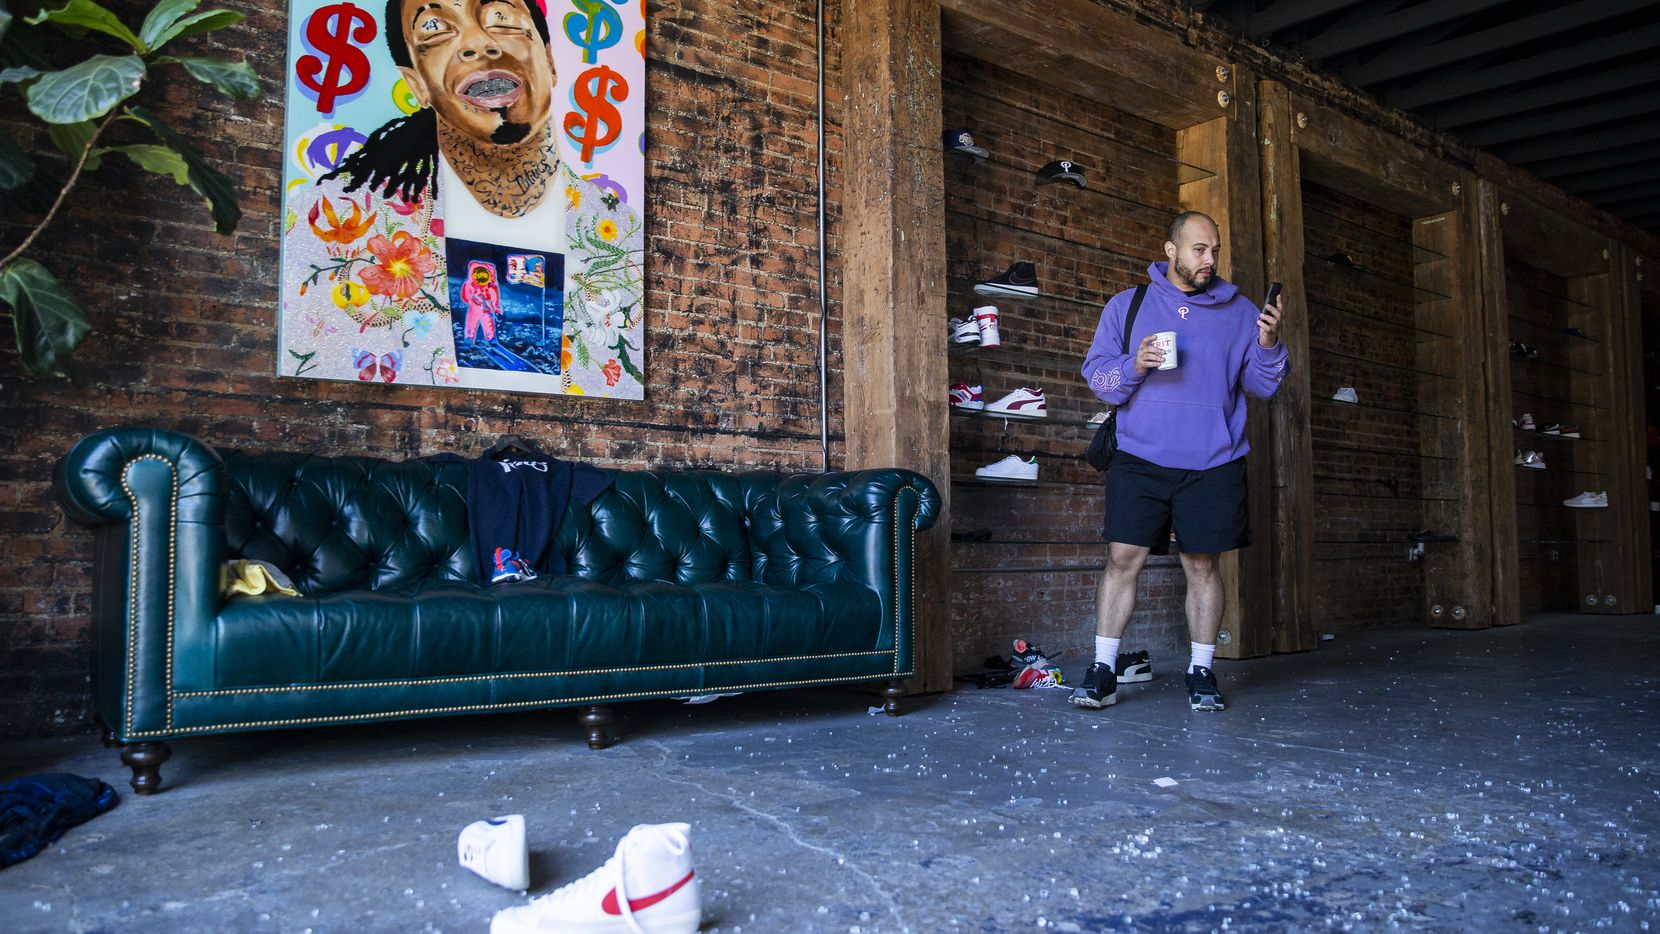 Sneaker Politics manager Kellen Daniel videos the damage done to the shop after it was looted during Friday night protests.